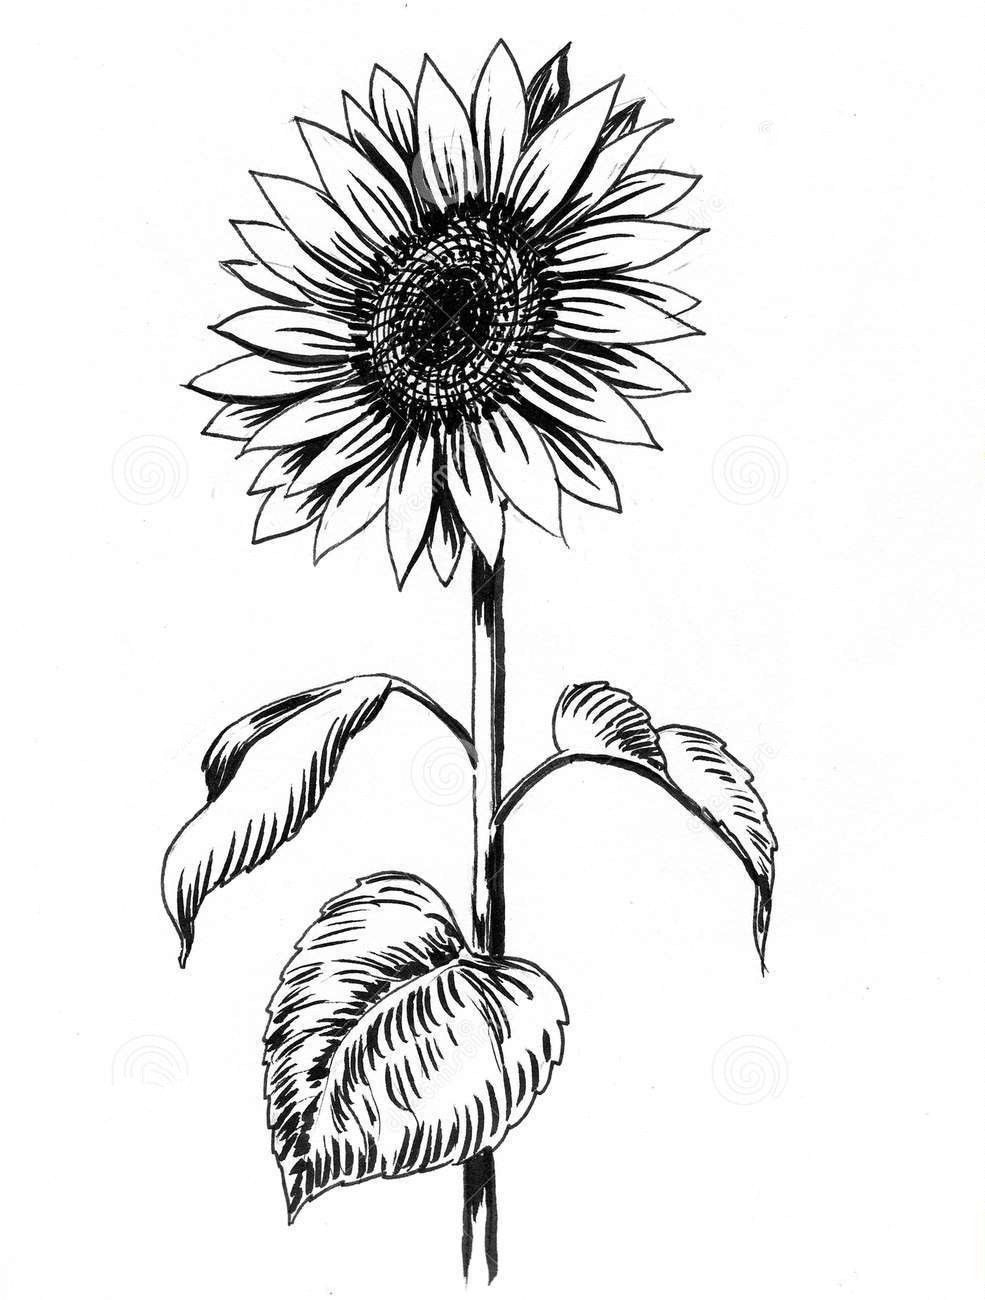 how to draw sunflowers how to draw a sunflower really easy drawing tutorial to draw sunflowers how